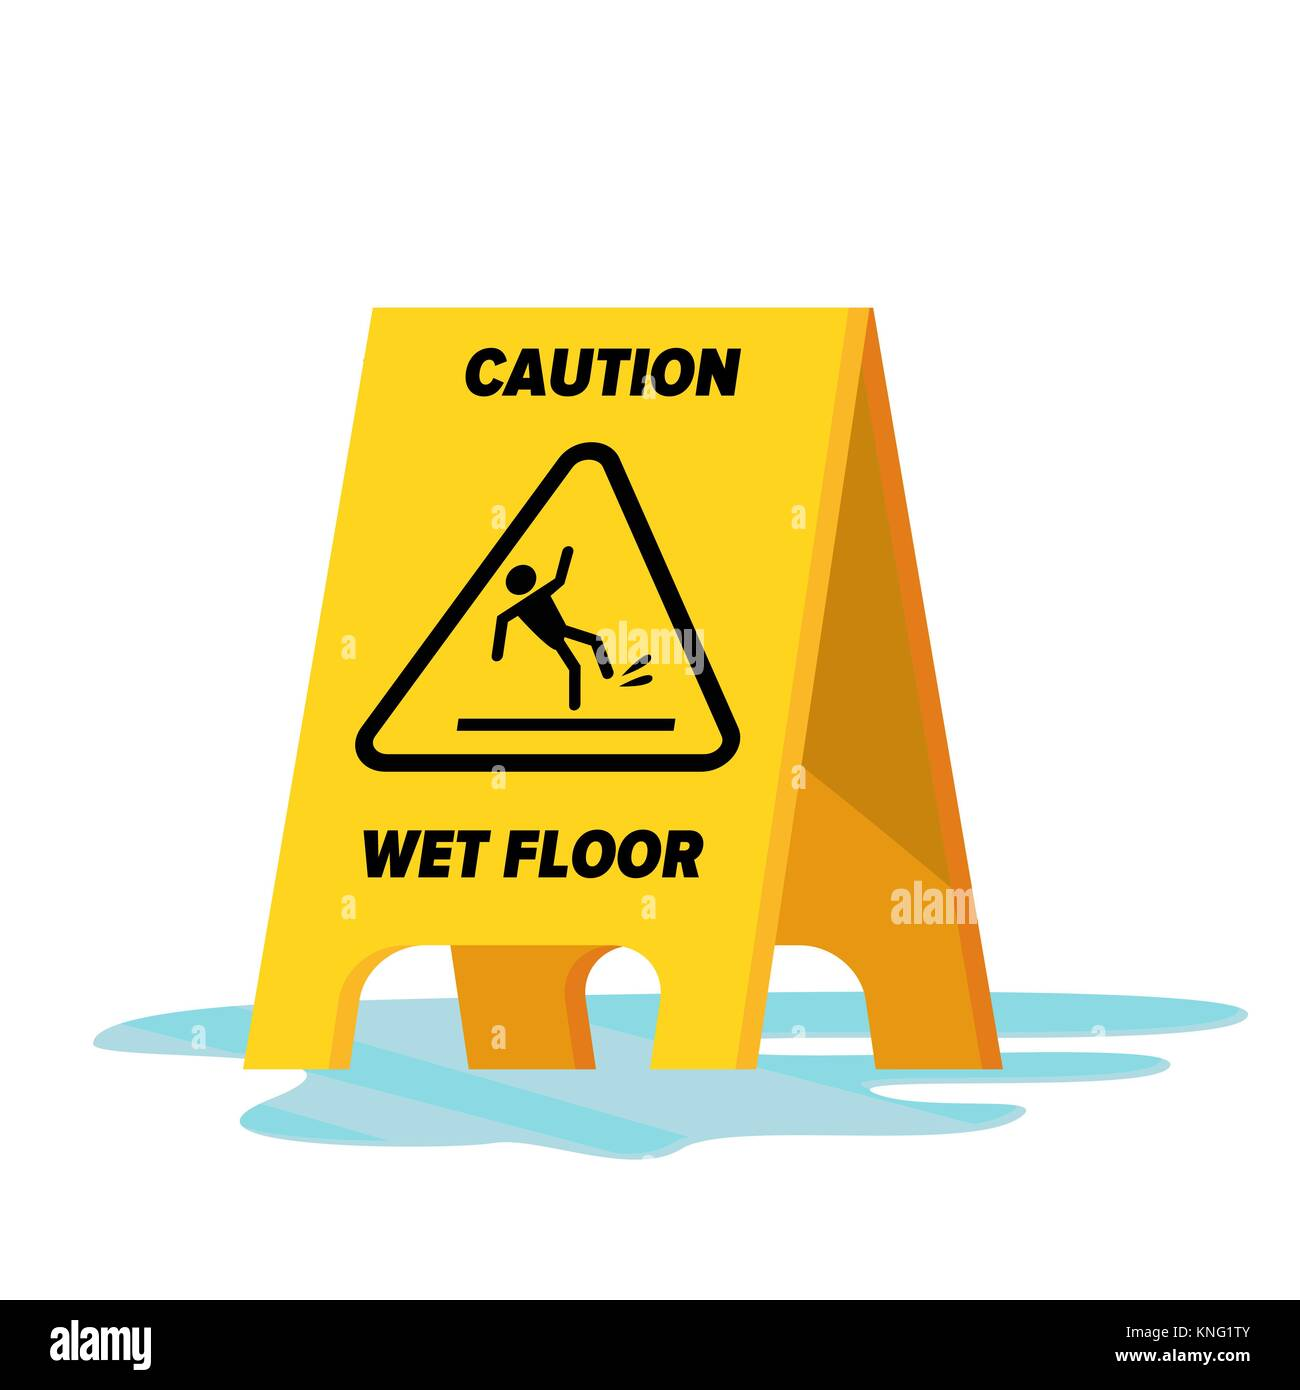 Wet Floor Vector. Classic Yellow Caution Warning Wet Floor Sign. Isolated Flat Illustration. - Stock Vector